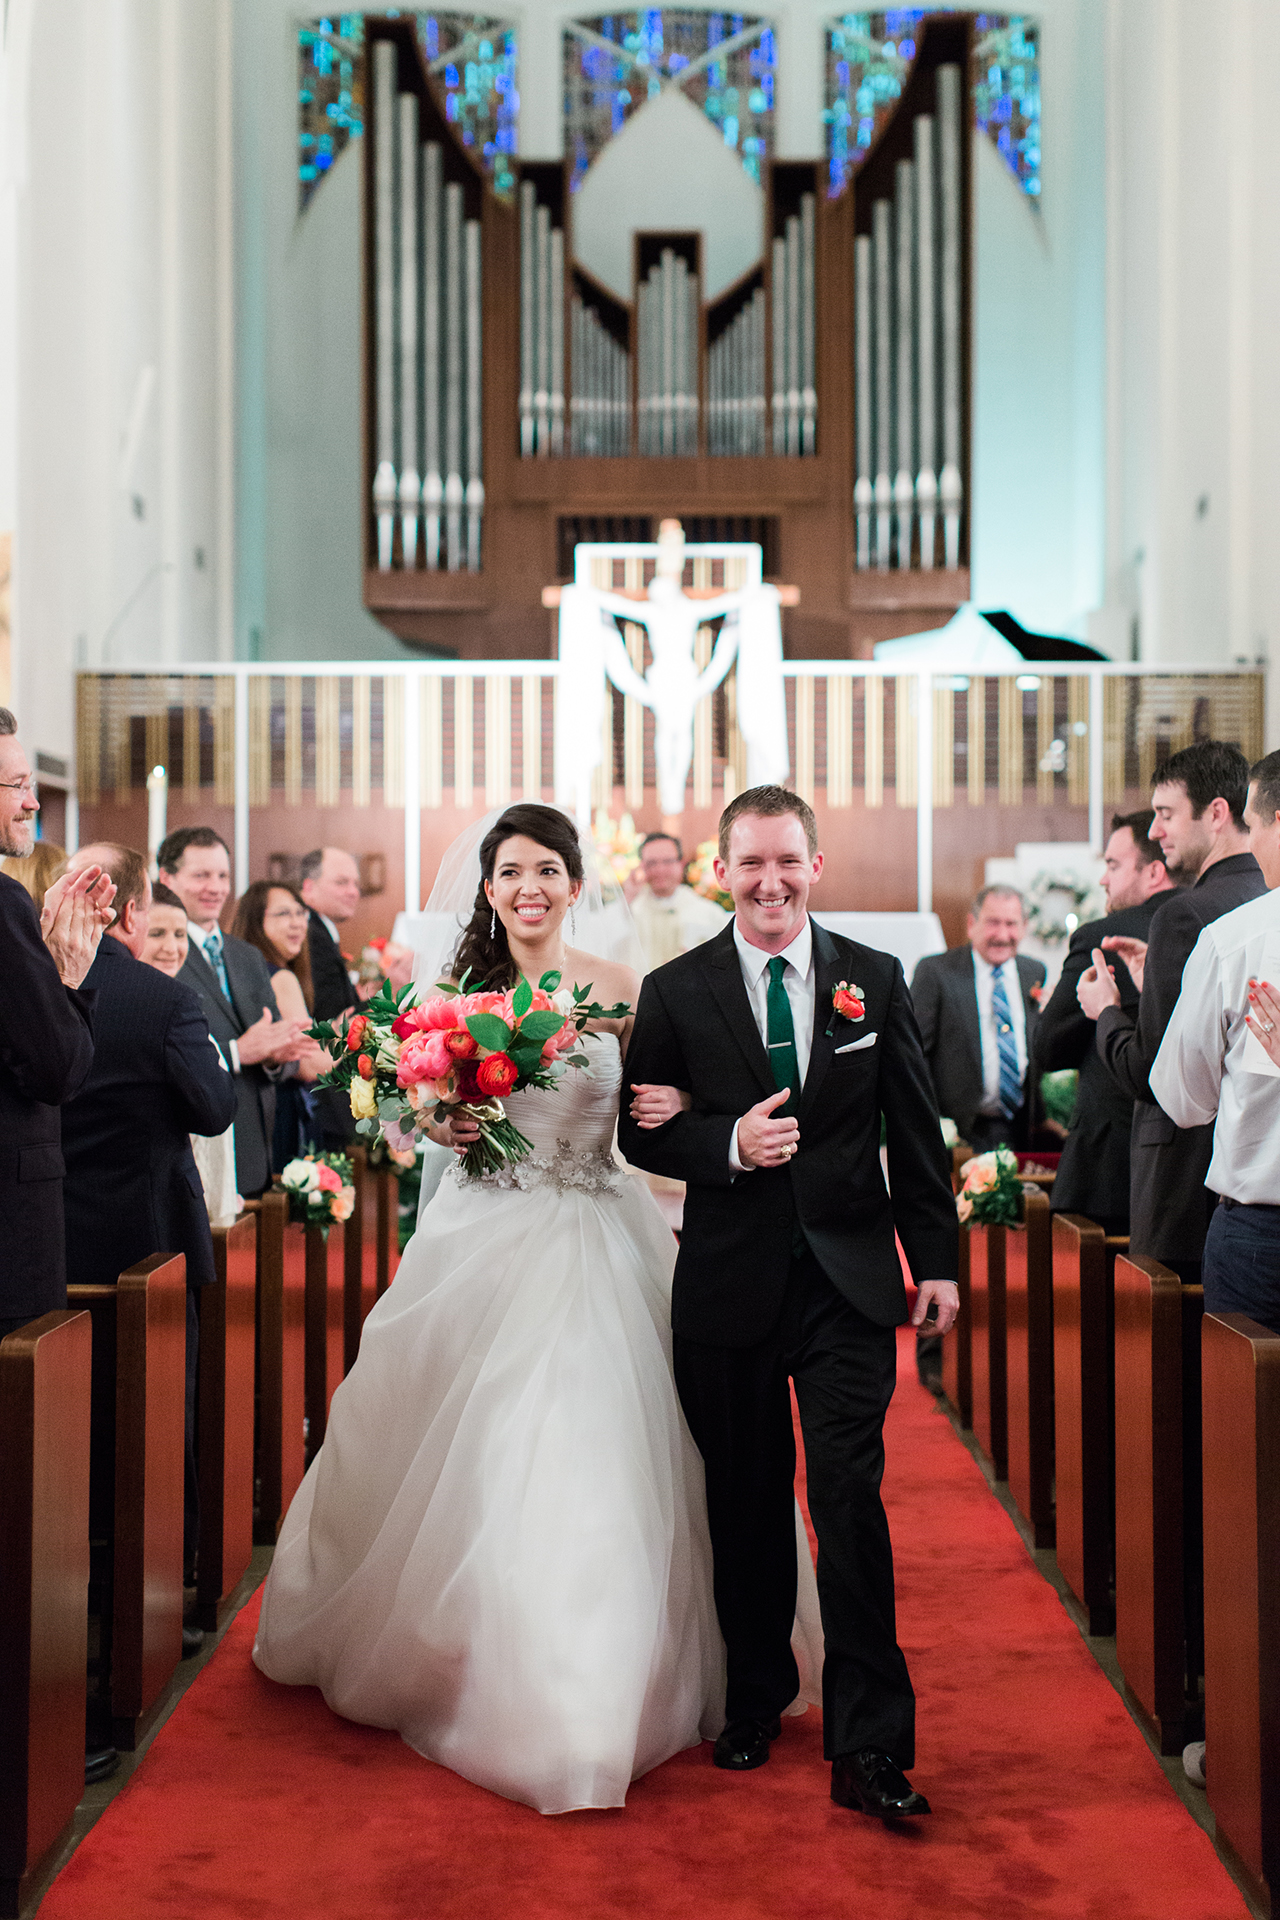 The ceremony took place at Holy Trinity Catholic Church in Fort Worth, Texas